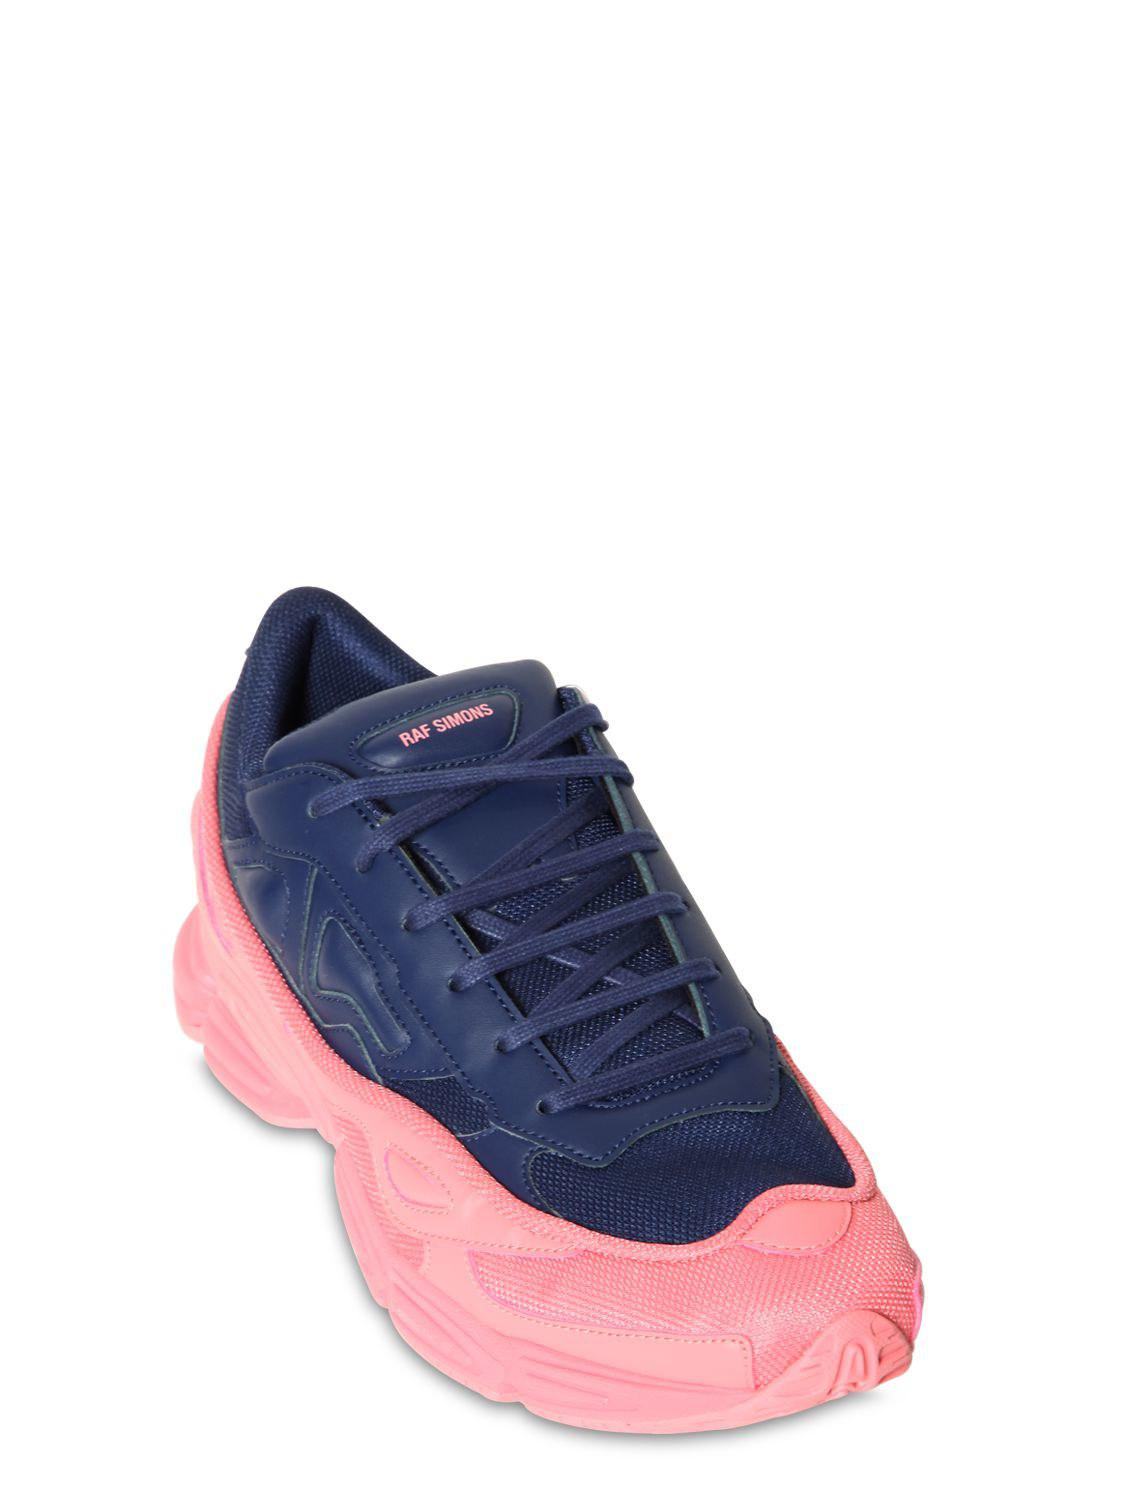 de5a67011c8e1a Lyst - adidas By Raf Simons Rs Ozweego Iii Two Tone Sneakers in Blue for Men